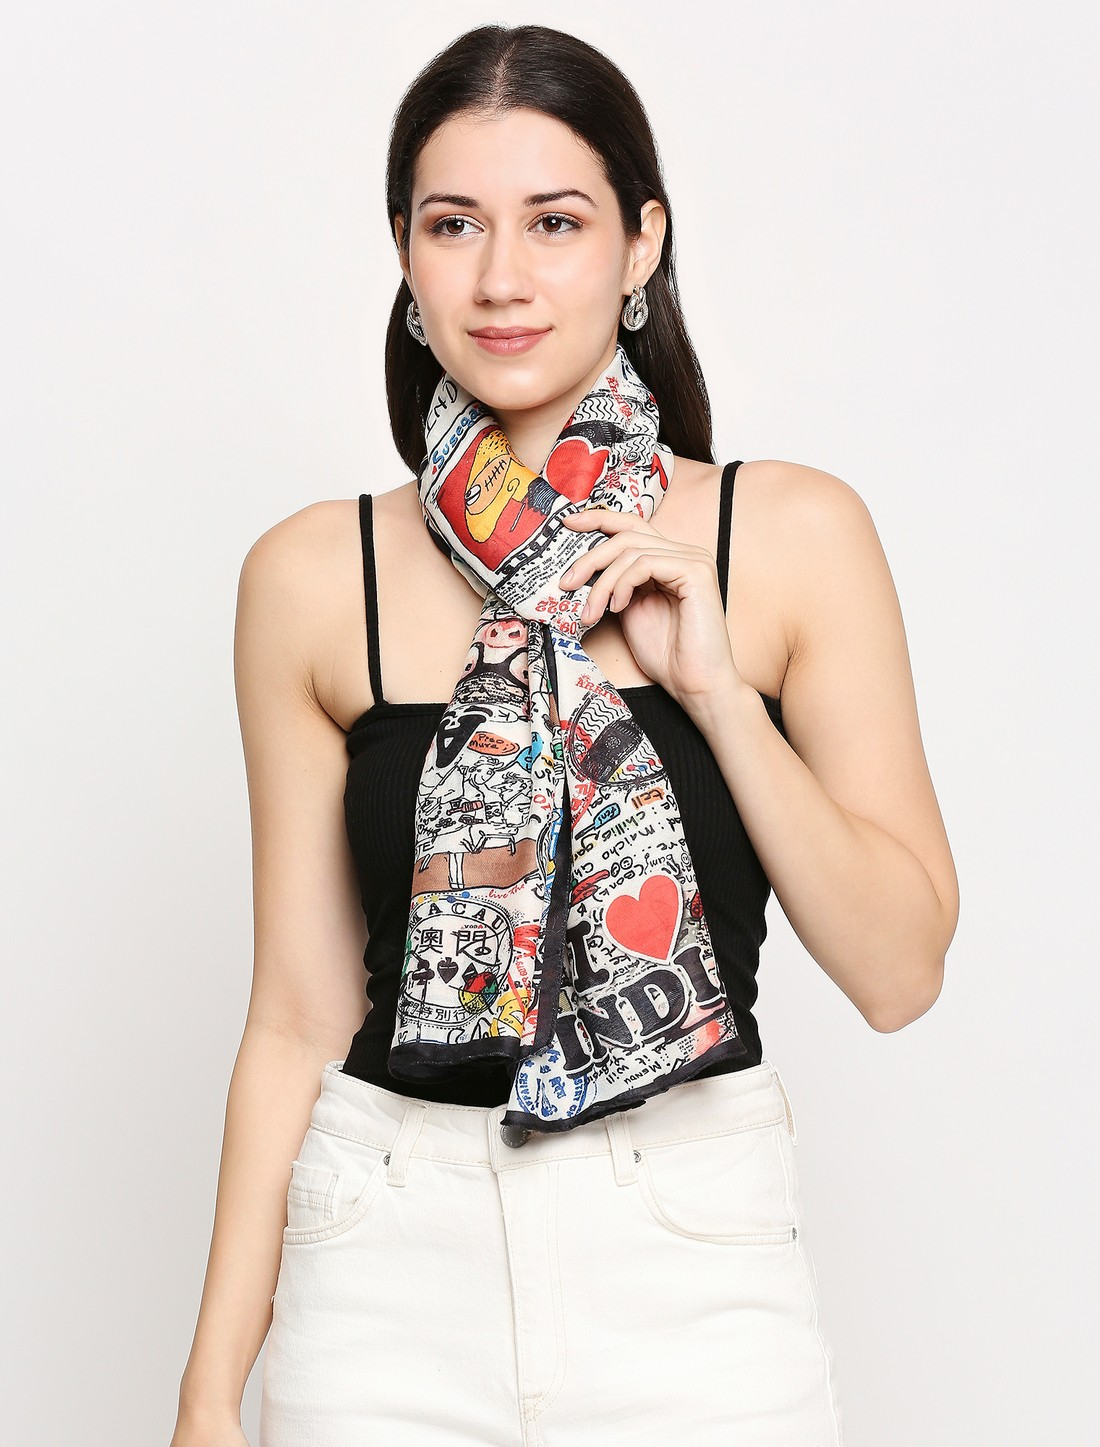 Get Wrapped | Get Wrapped Digital Printed Scarf in Soft Wool Feel Fabric for Women